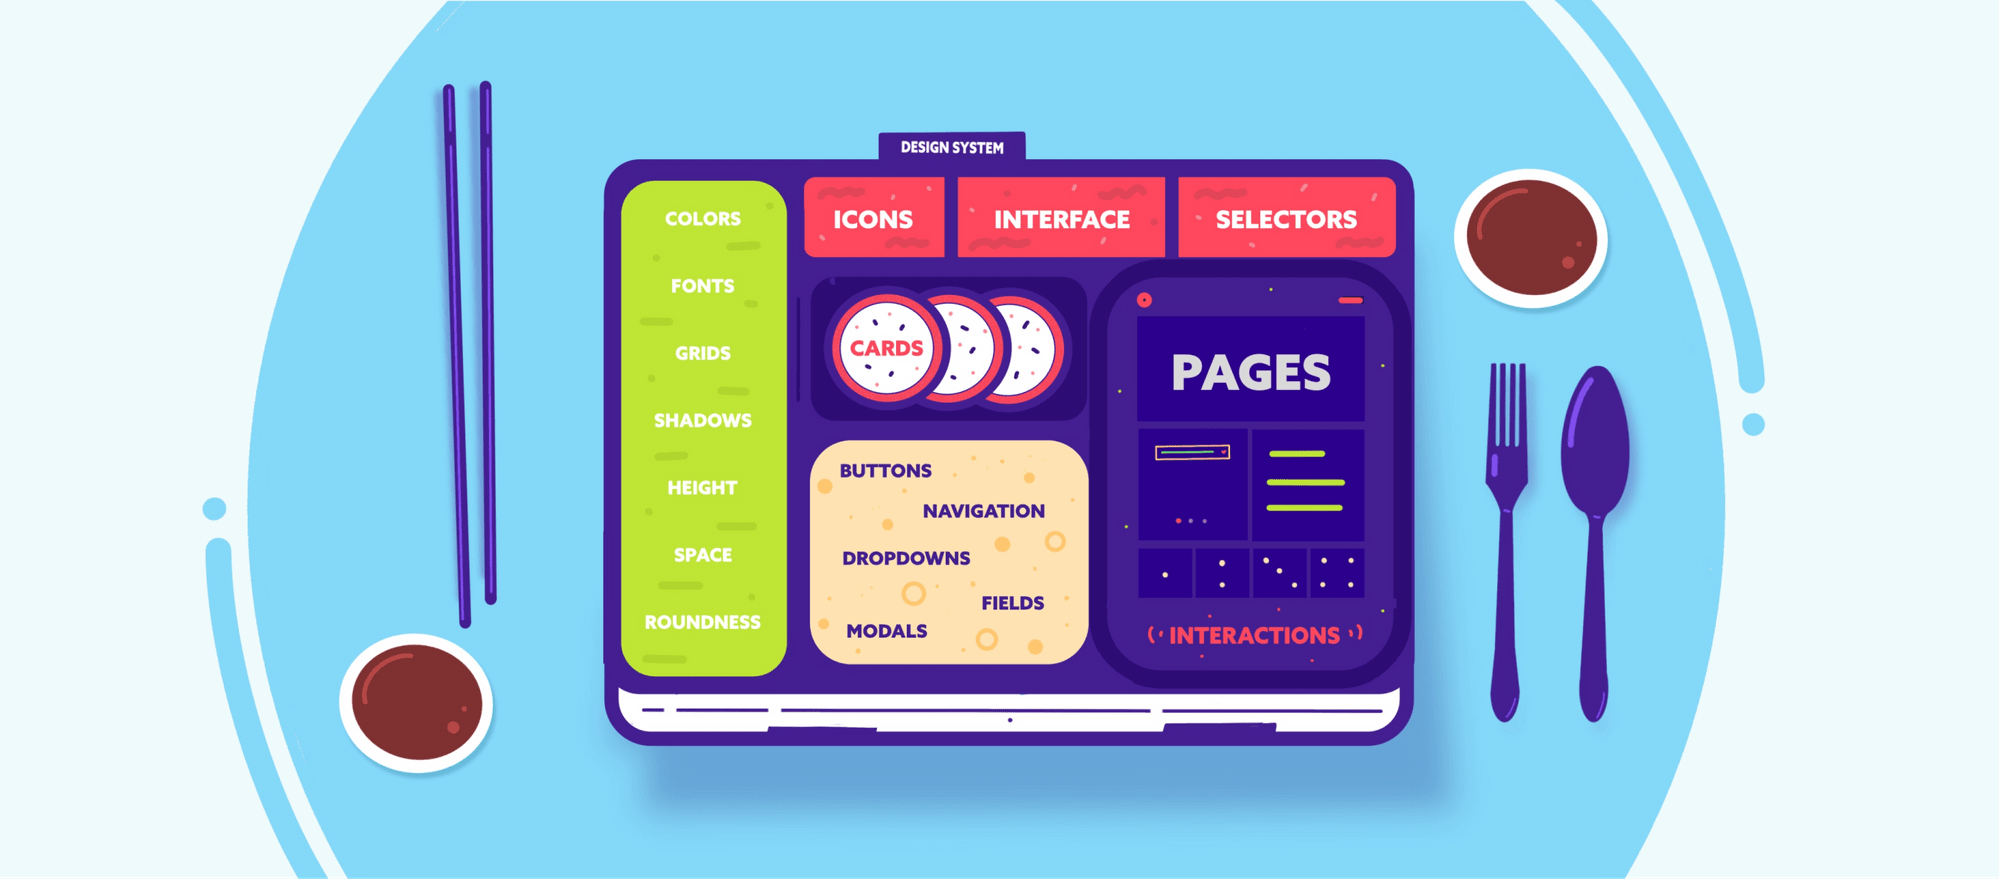 The Impact of Design Systems